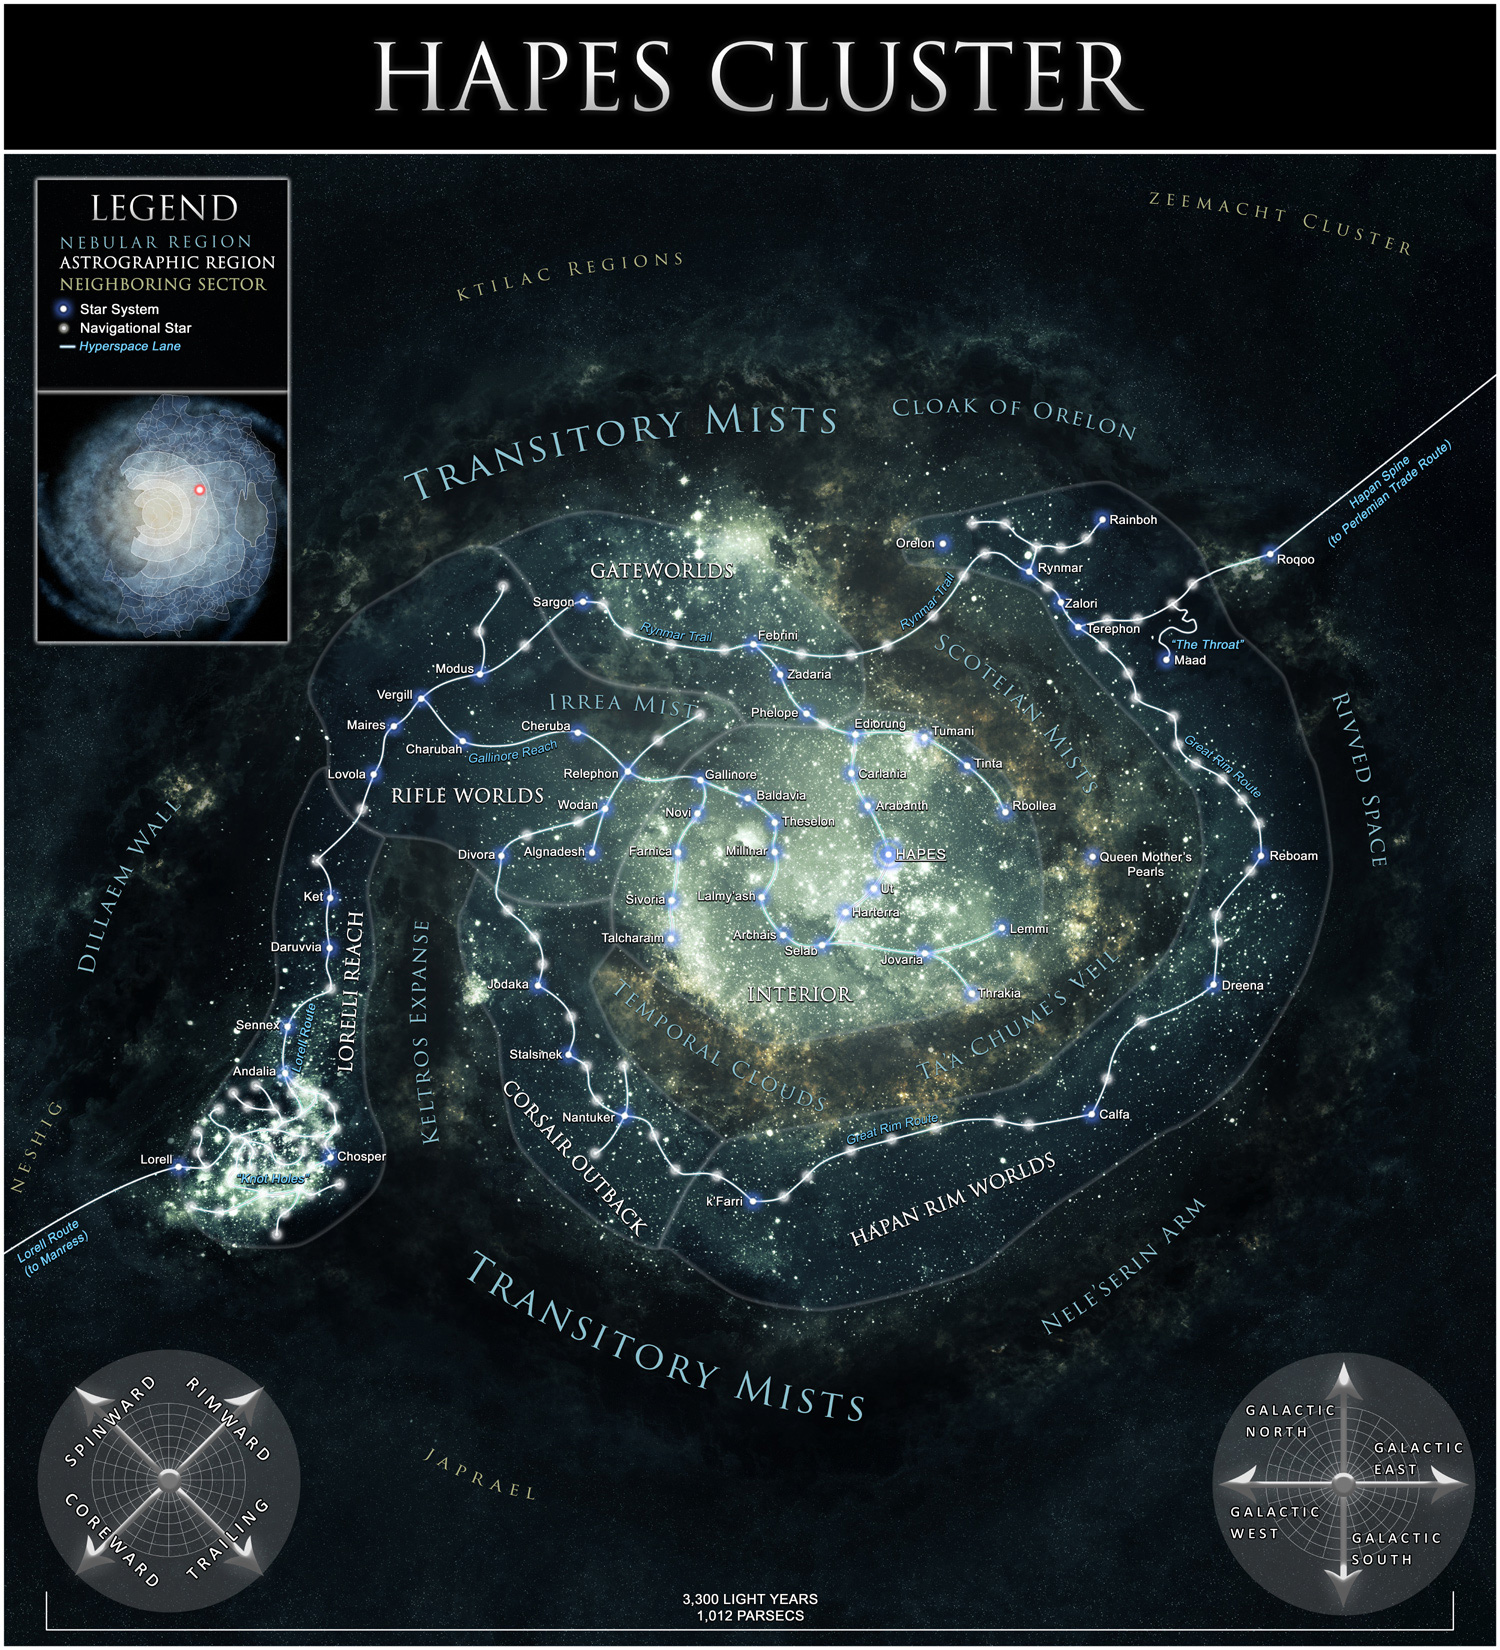 Geographic map of the Hapes Cluster.